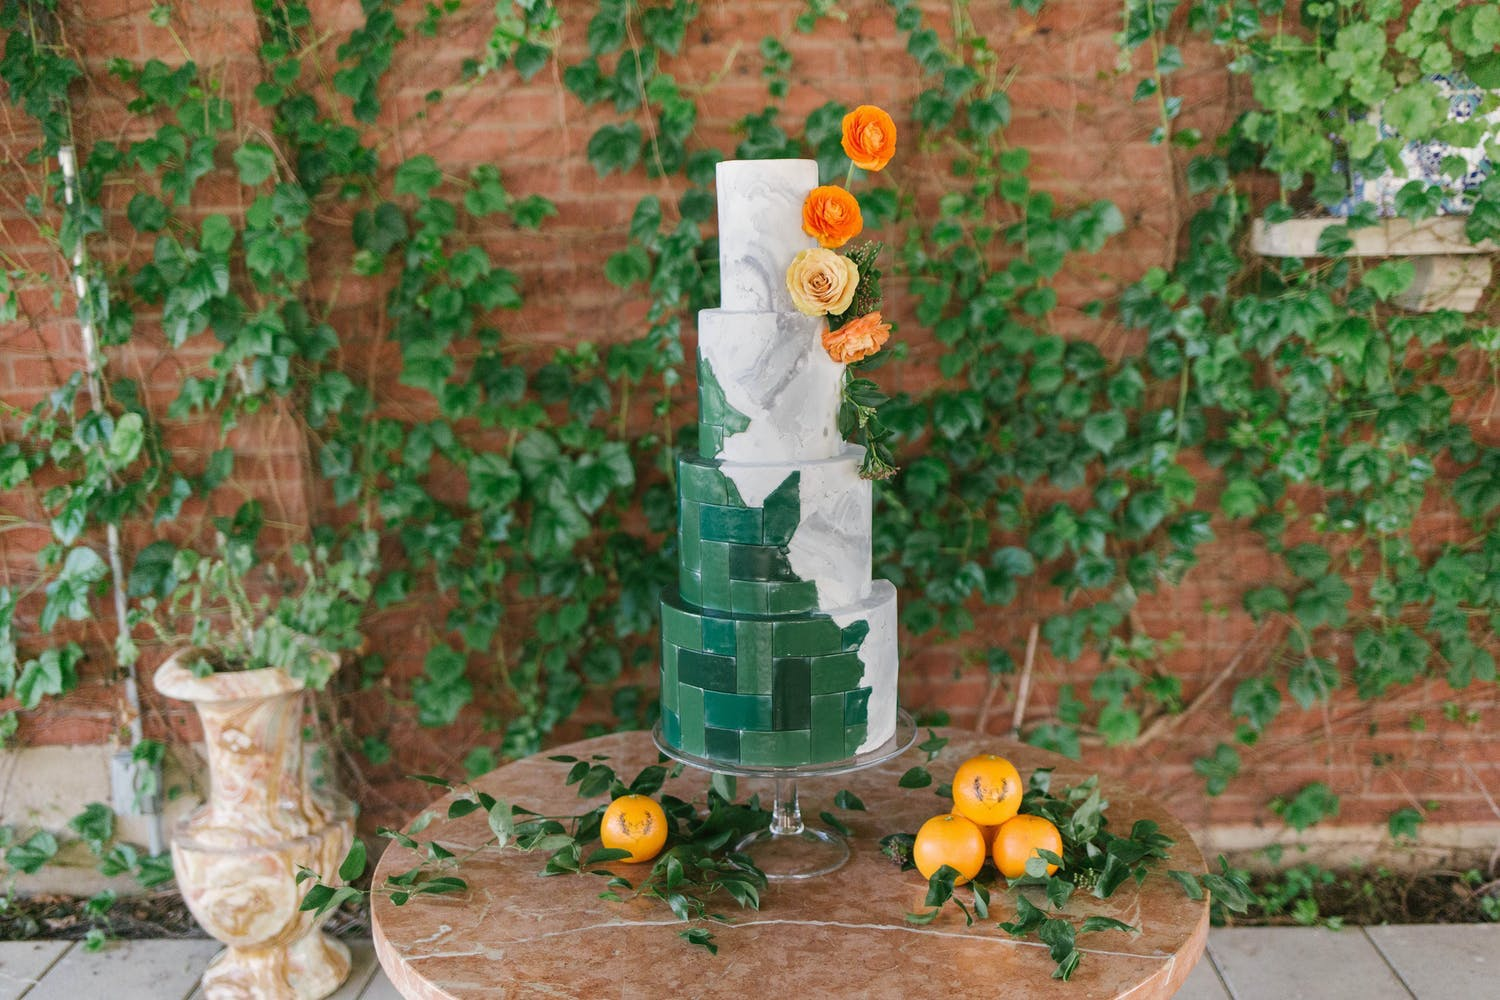 Four-tier circular wedding cake with mix of green tile designs and grey marble | PartySlate